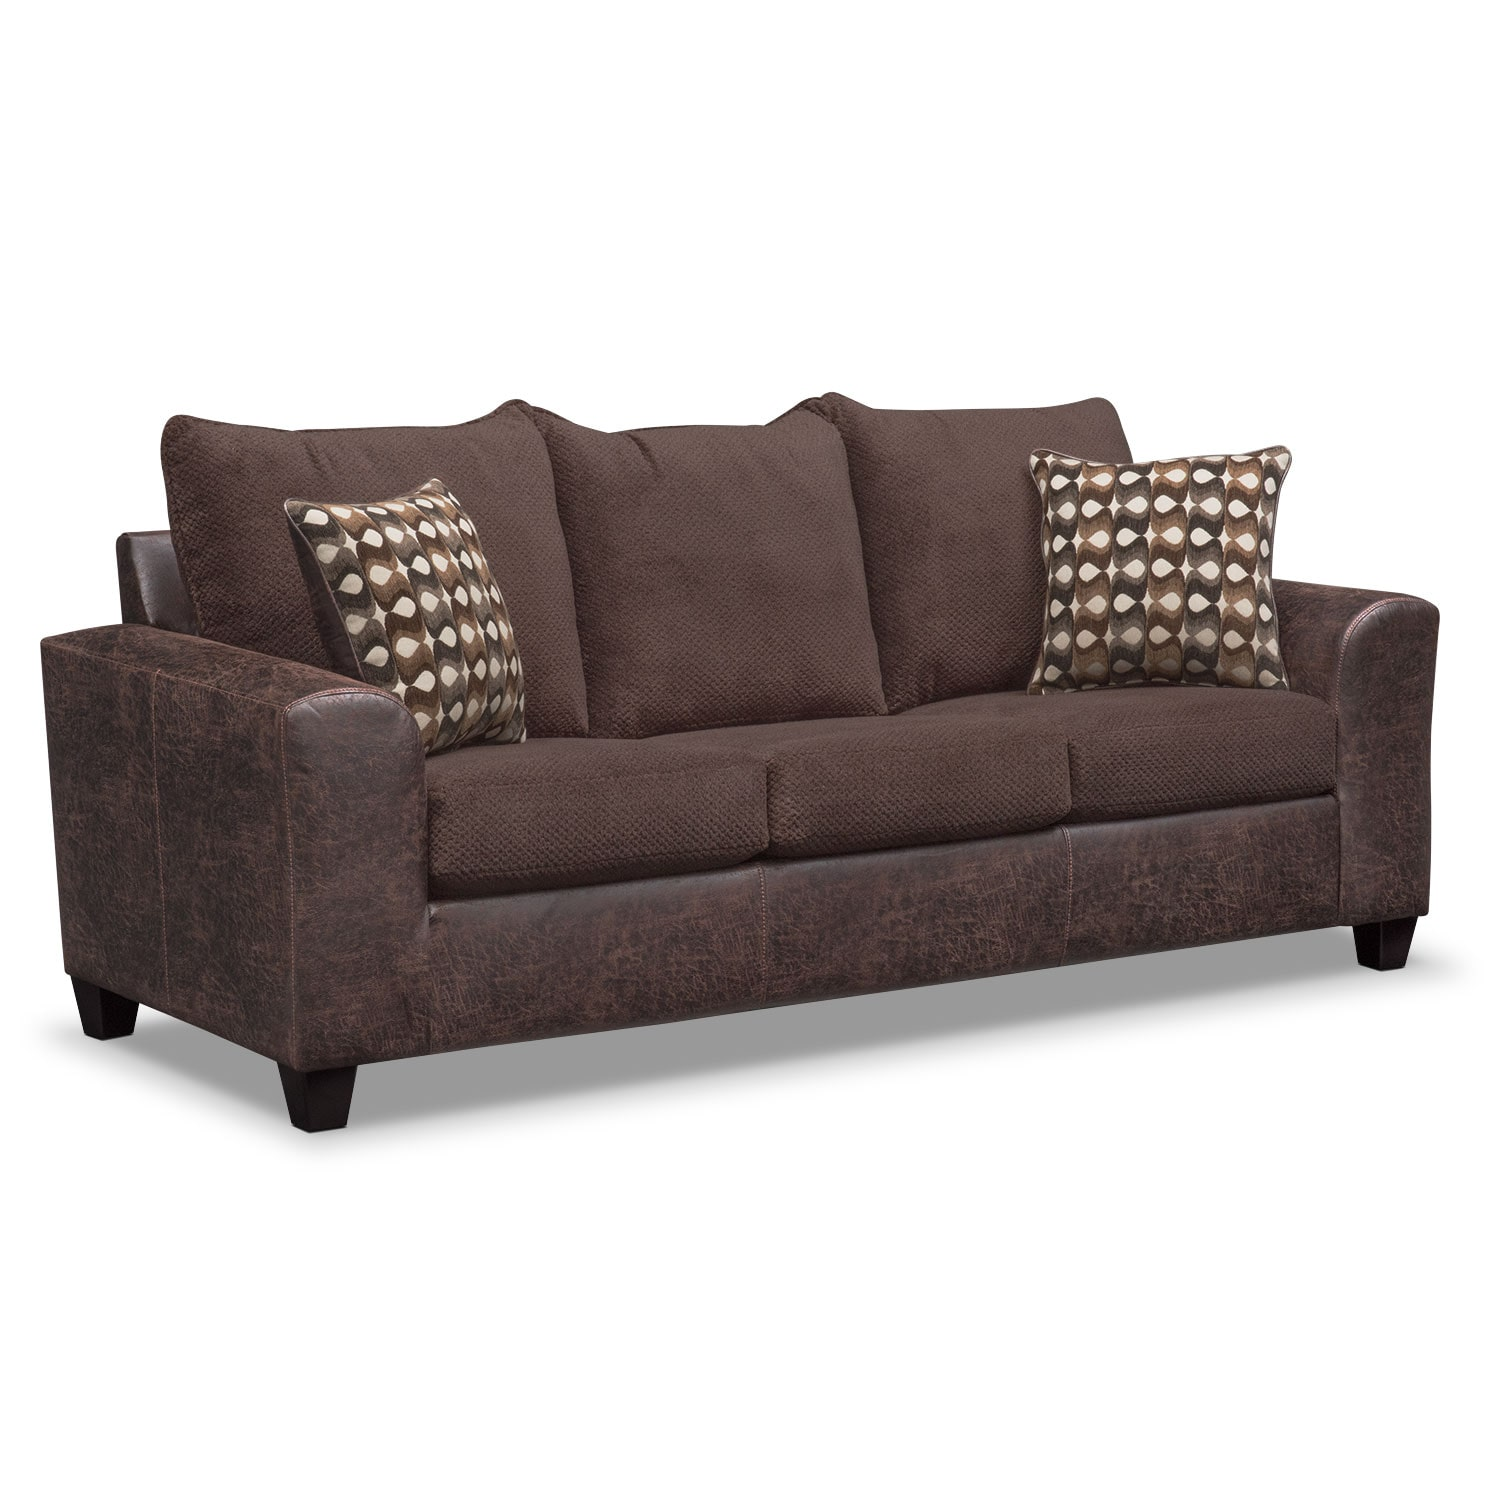 brando sofa chocolate value city furniture. Black Bedroom Furniture Sets. Home Design Ideas